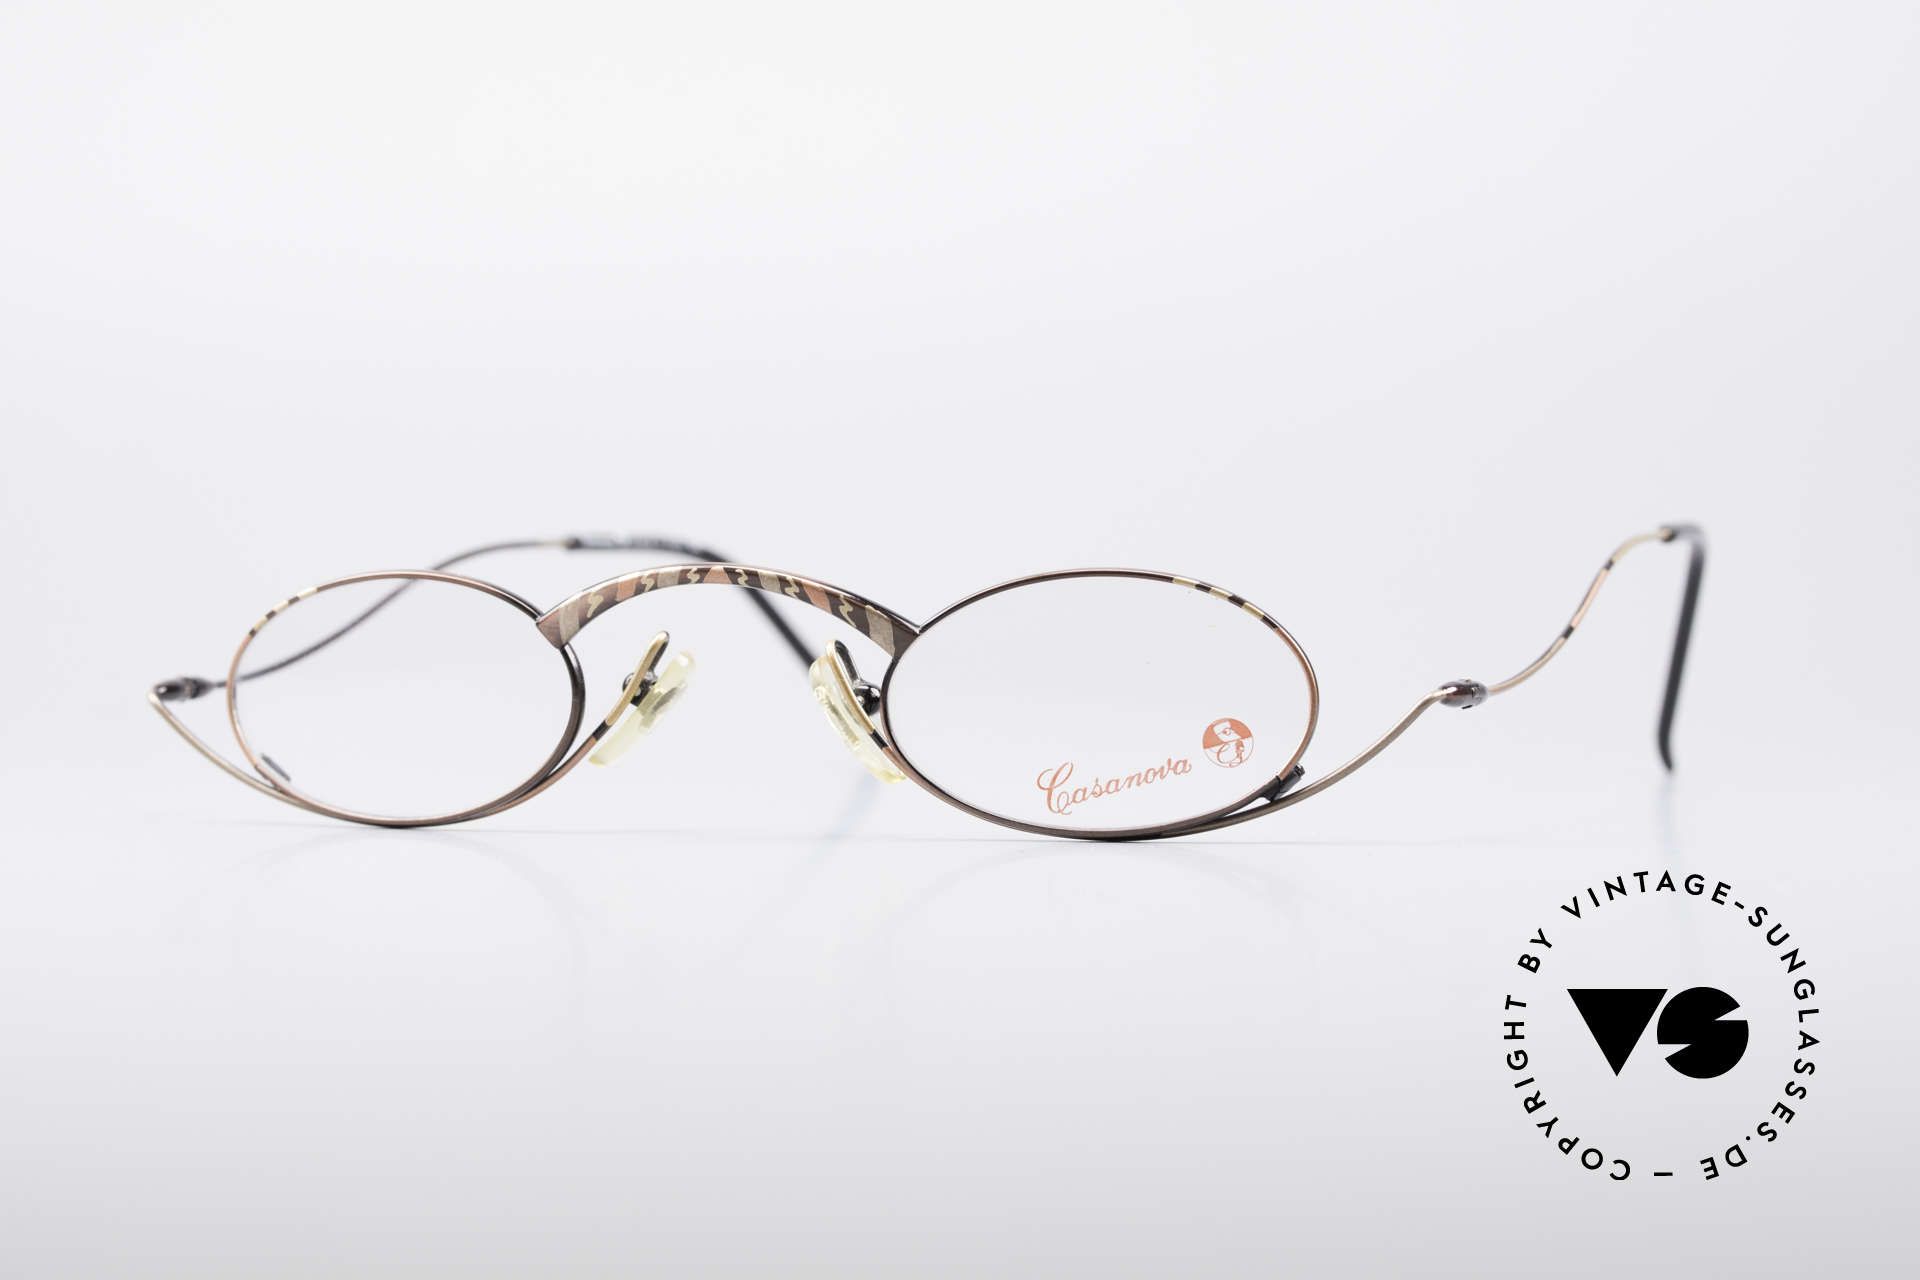 Casanova LC44 Vintage Reading Glasses, extraordinary vintage reading glasses by CASANOVA, Made for Men and Women